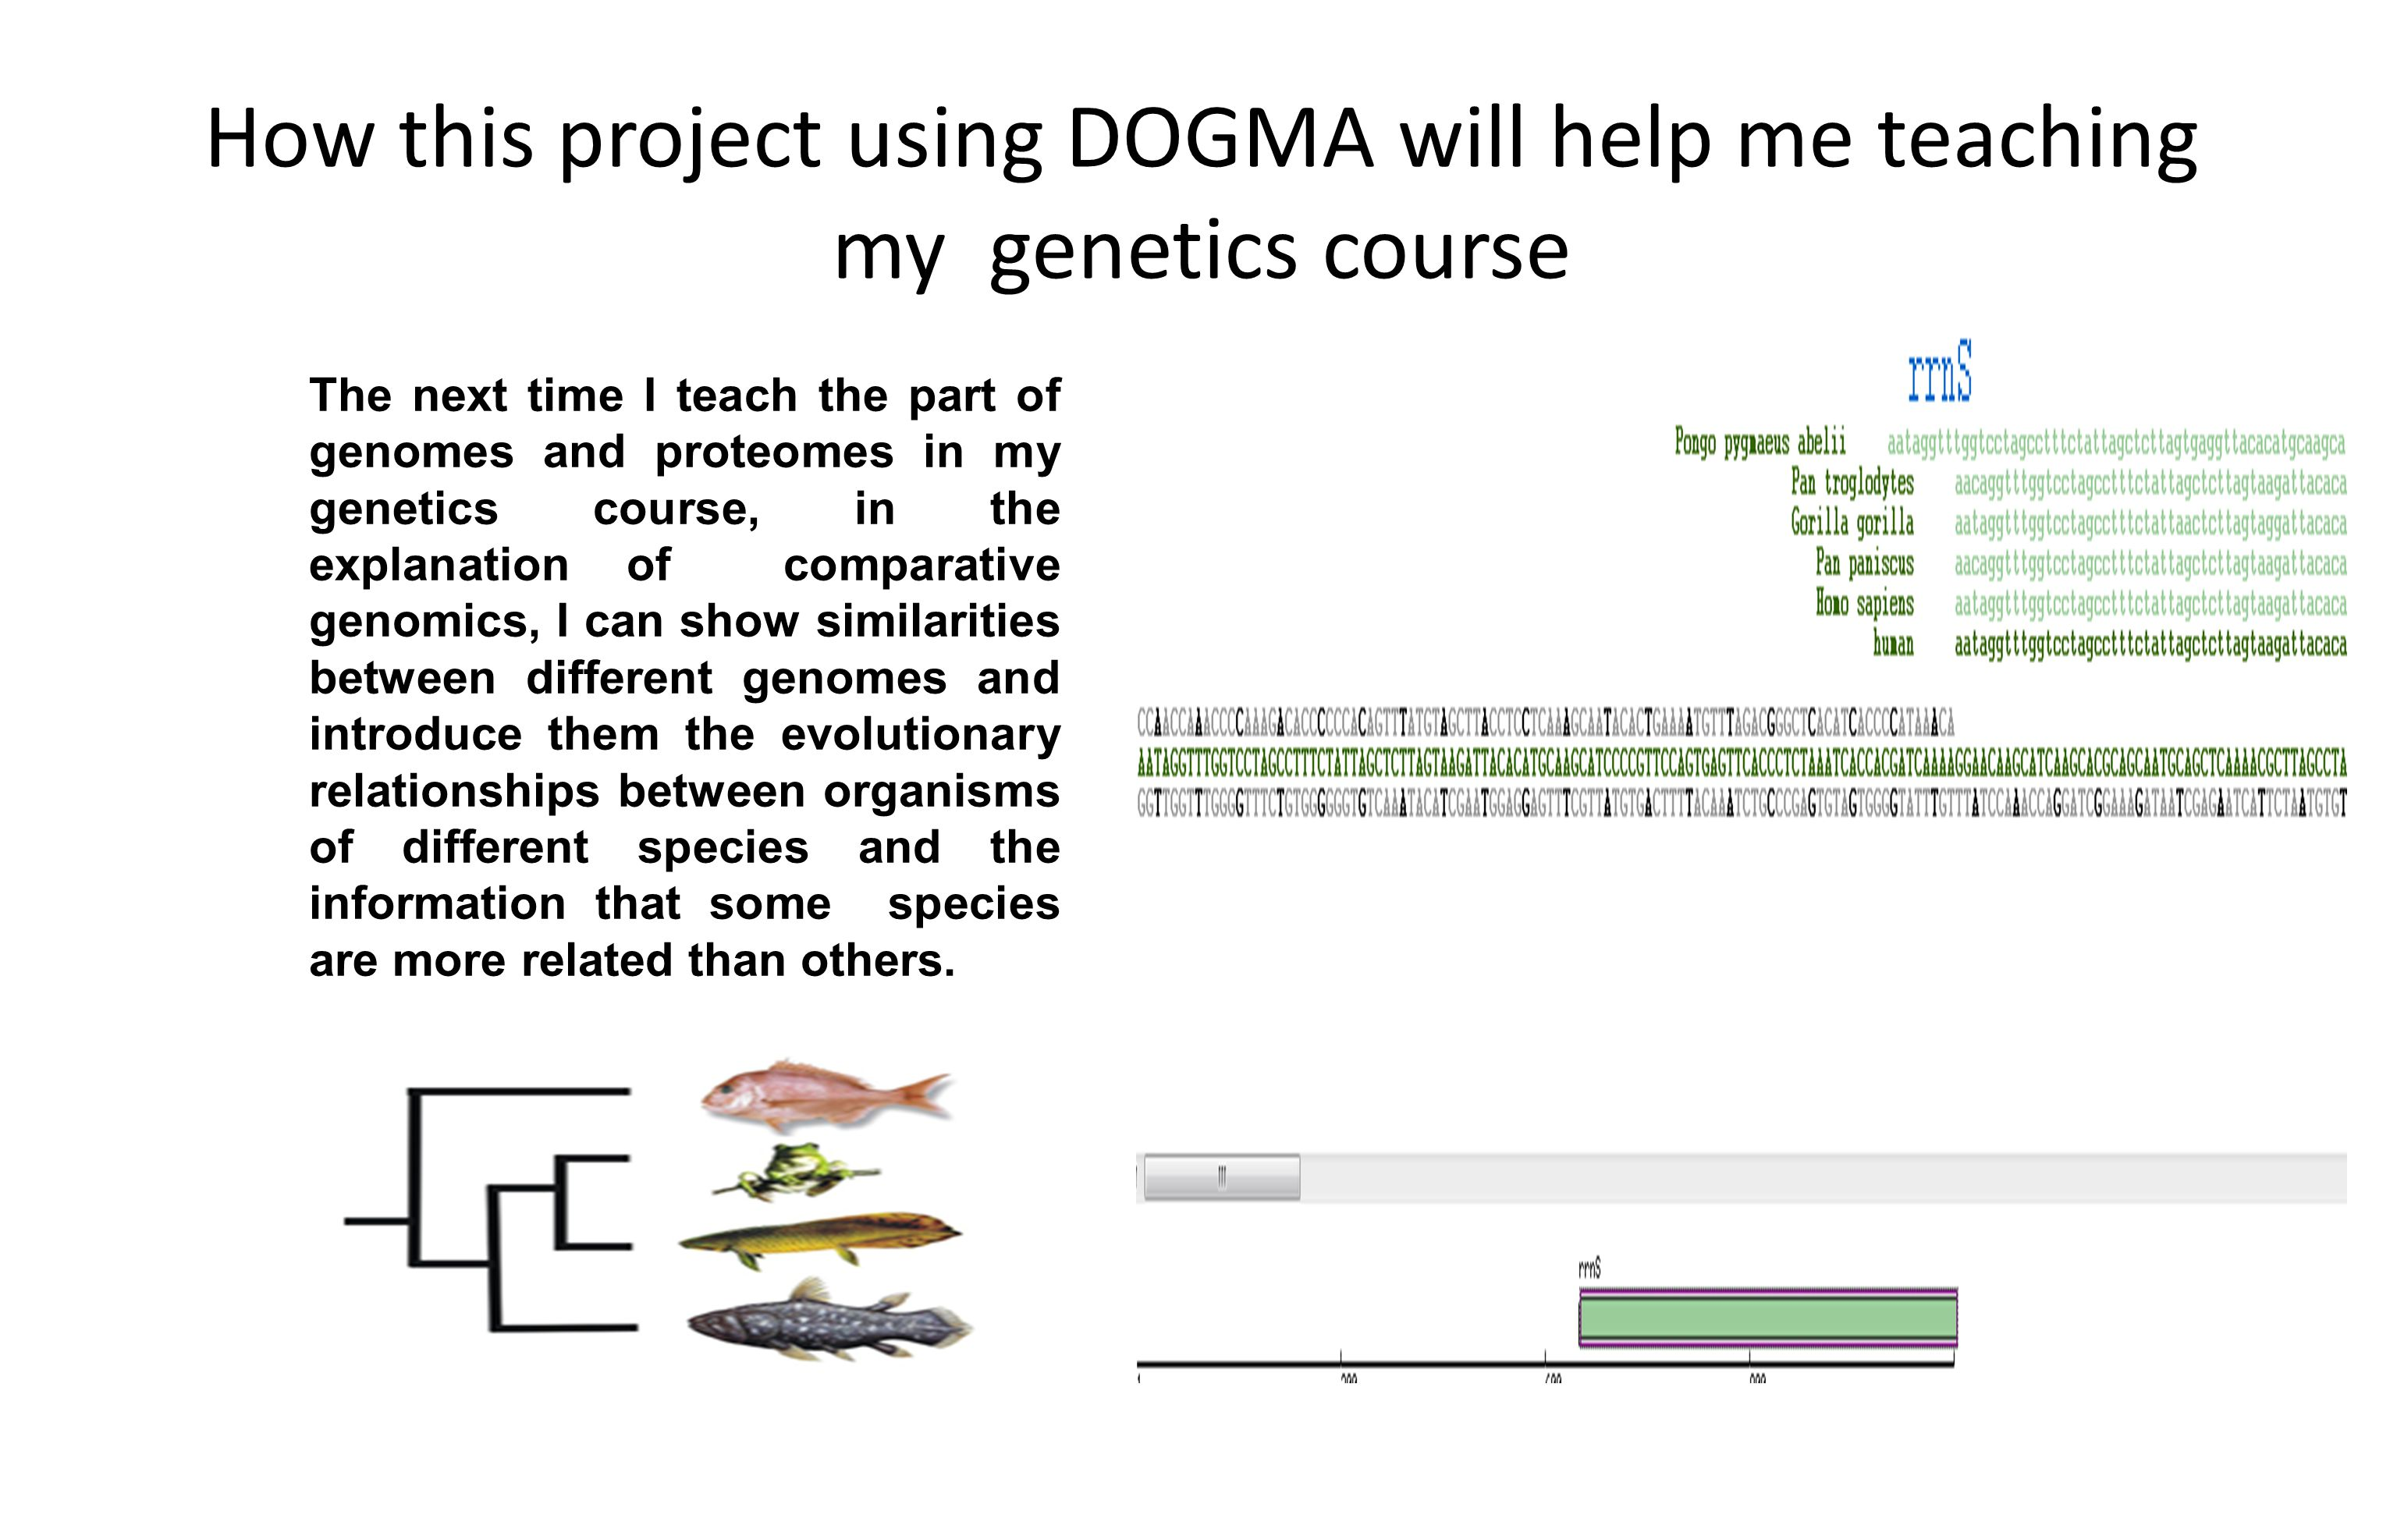 How this project using DOGMA will help me teaching my genetics course The next time I teach the part of genomes and proteomes in my genetics course, in the explanation of comparative genomics, I can show similarities between different genomes and introduce them the evolutionary relationships between organisms of different species and the information that some species are more related than others.